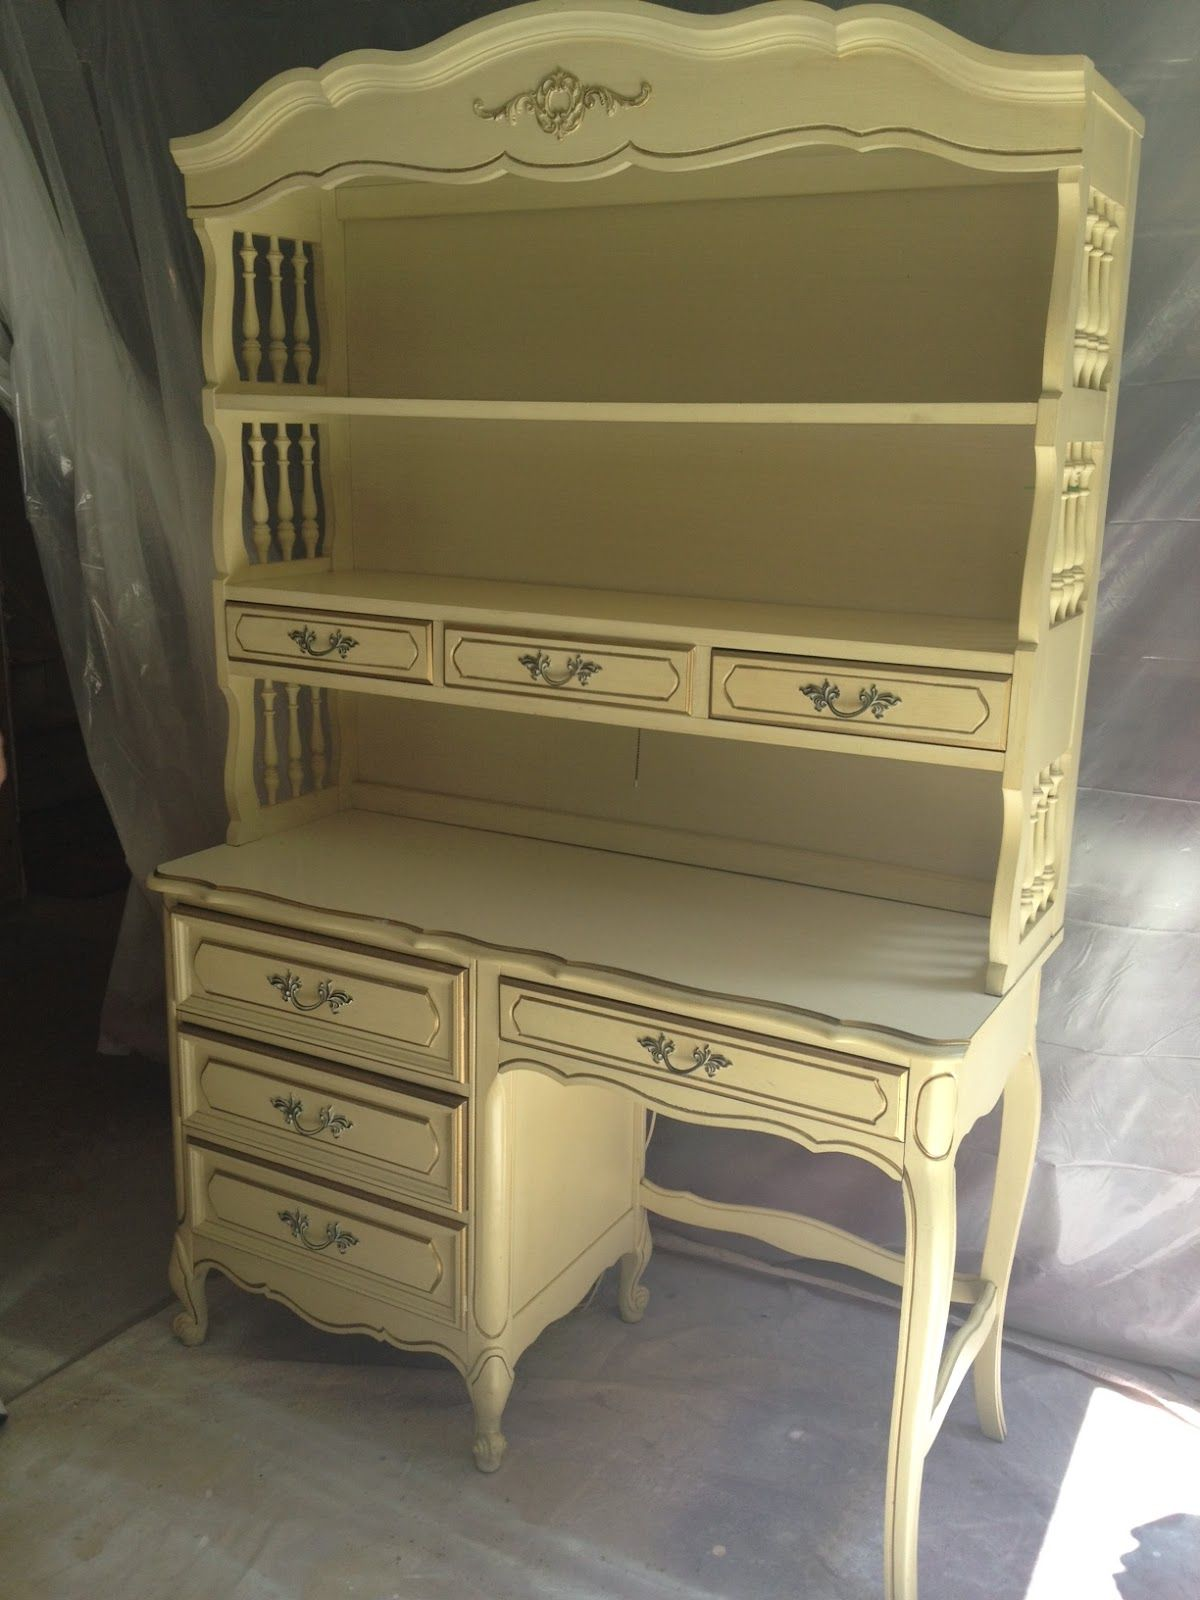 French Provincial Desk | French Provincial Desk And Hutch...want This Style